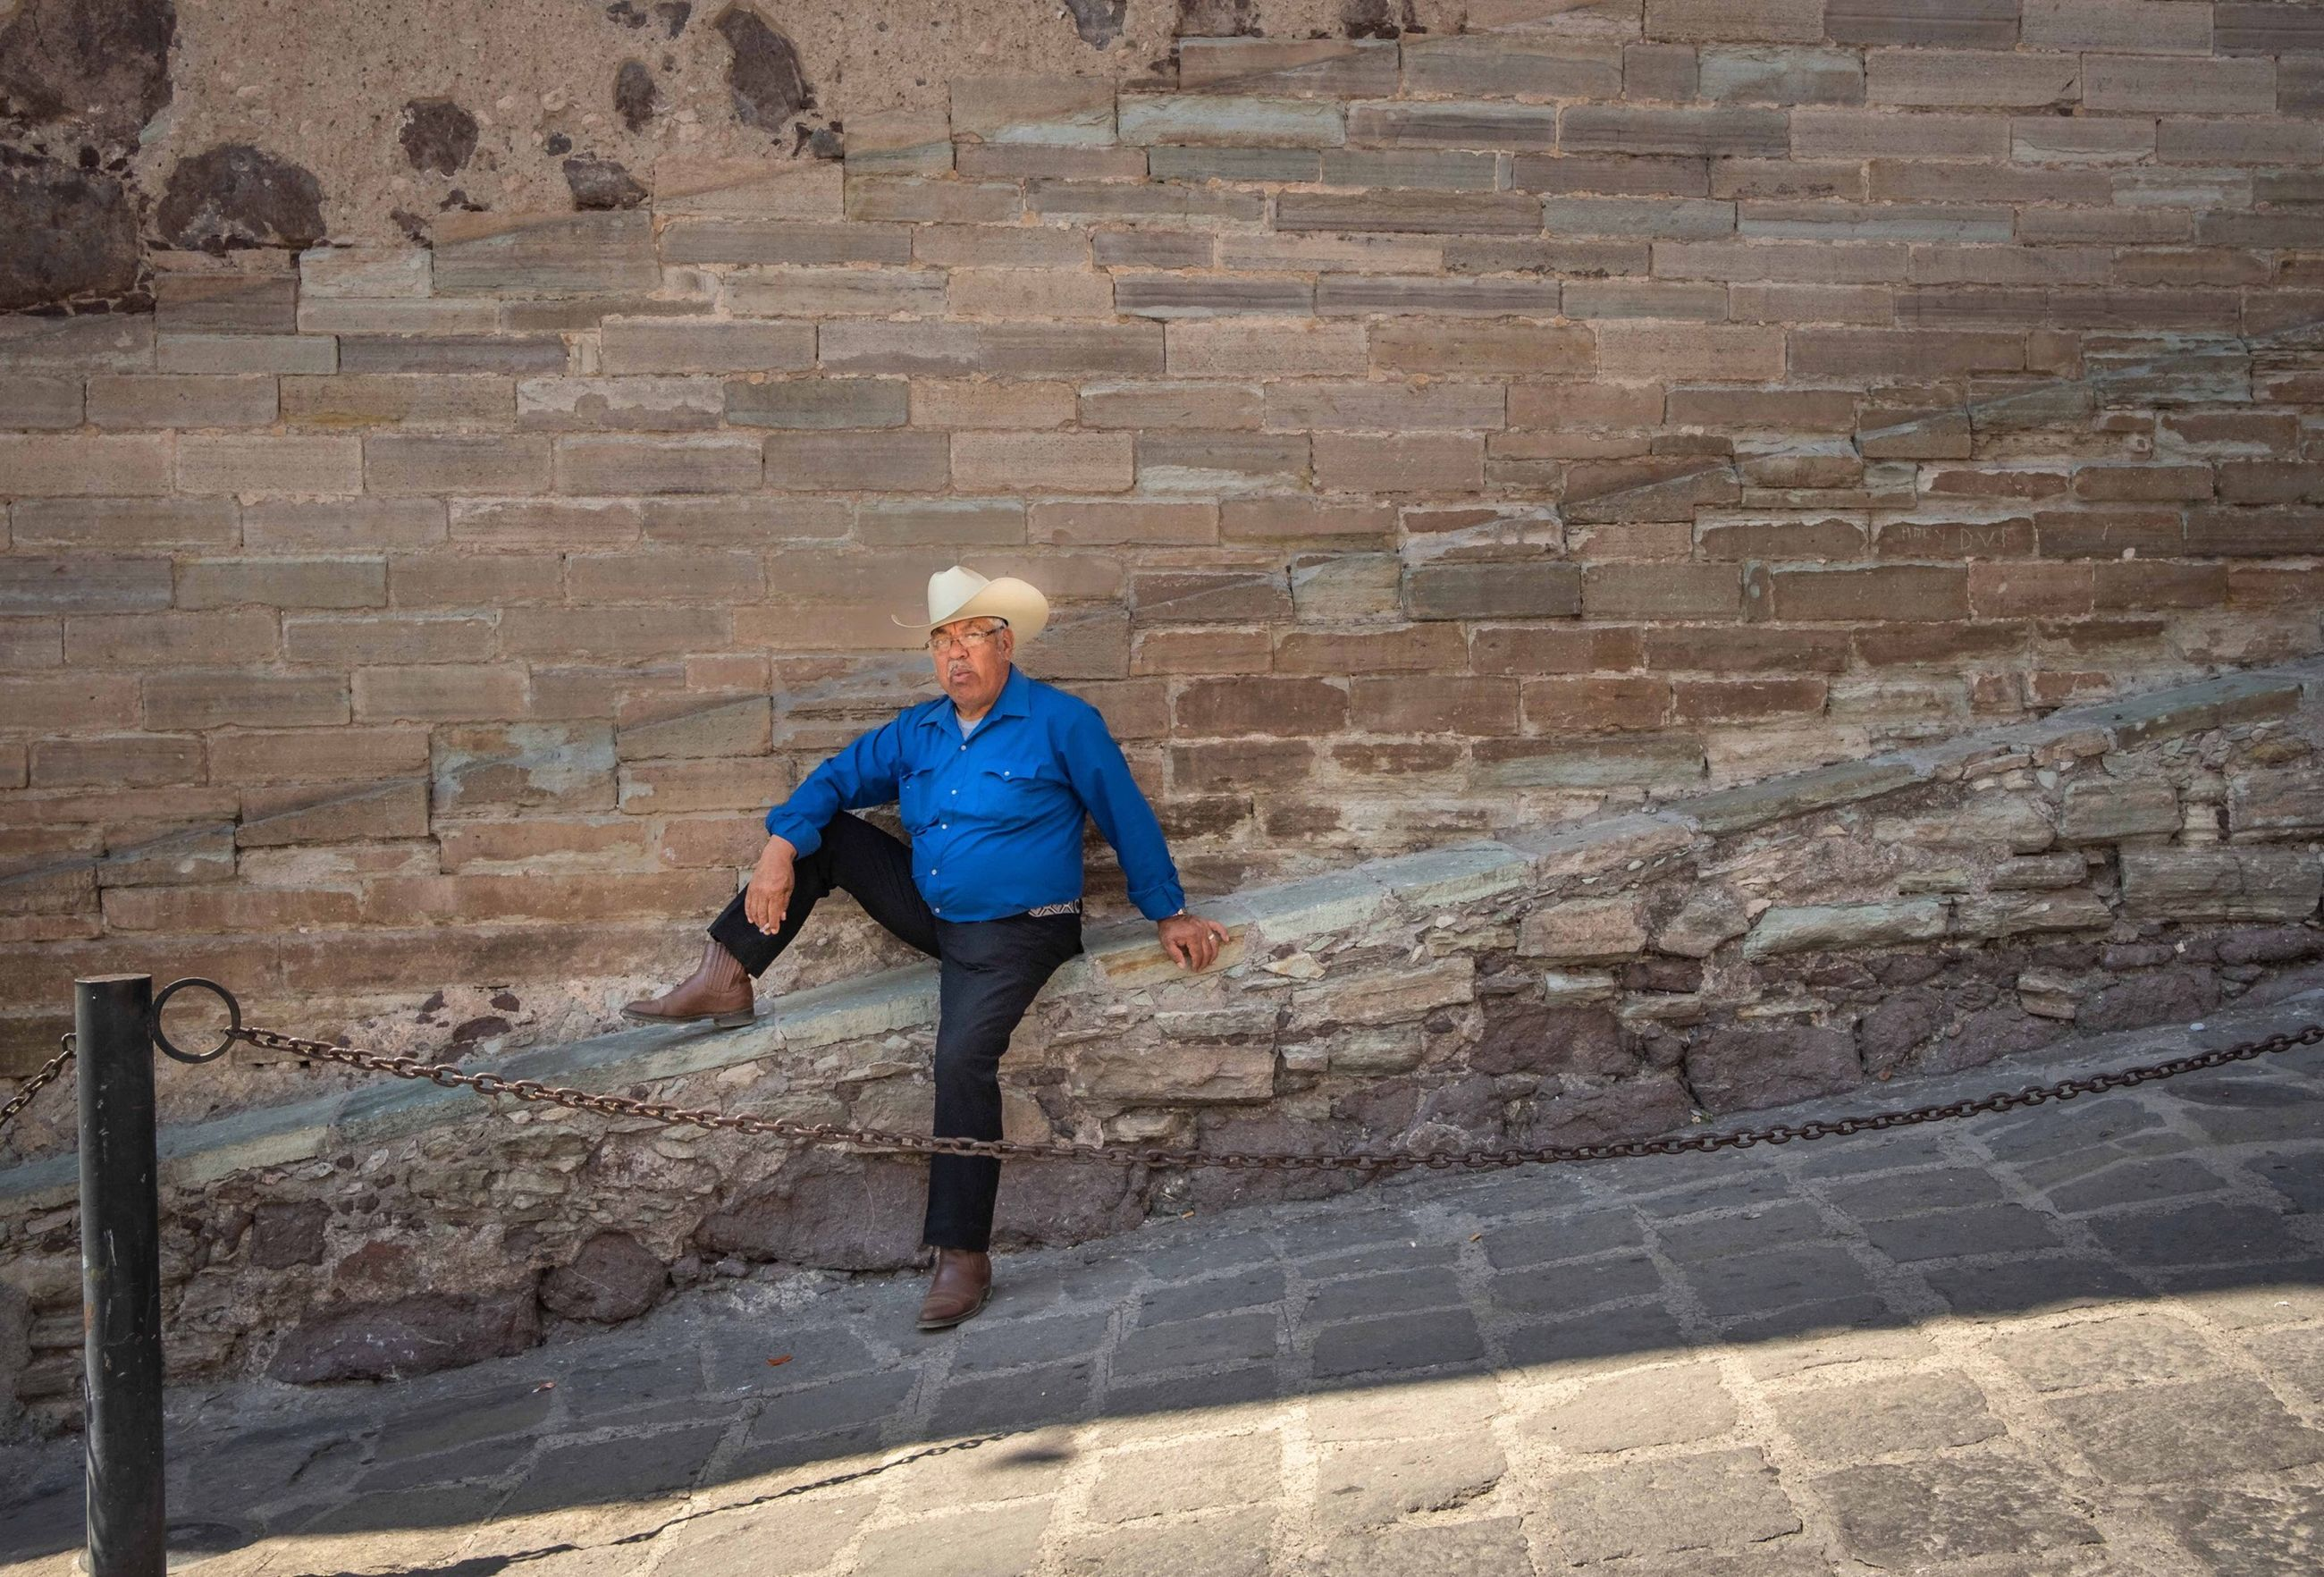 one person, full length, wall, architecture, real people, lifestyles, brick, brick wall, senior adult, leisure activity, front view, staircase, casual clothing, wall - building feature, adult, day, senior women, built structure, outdoors